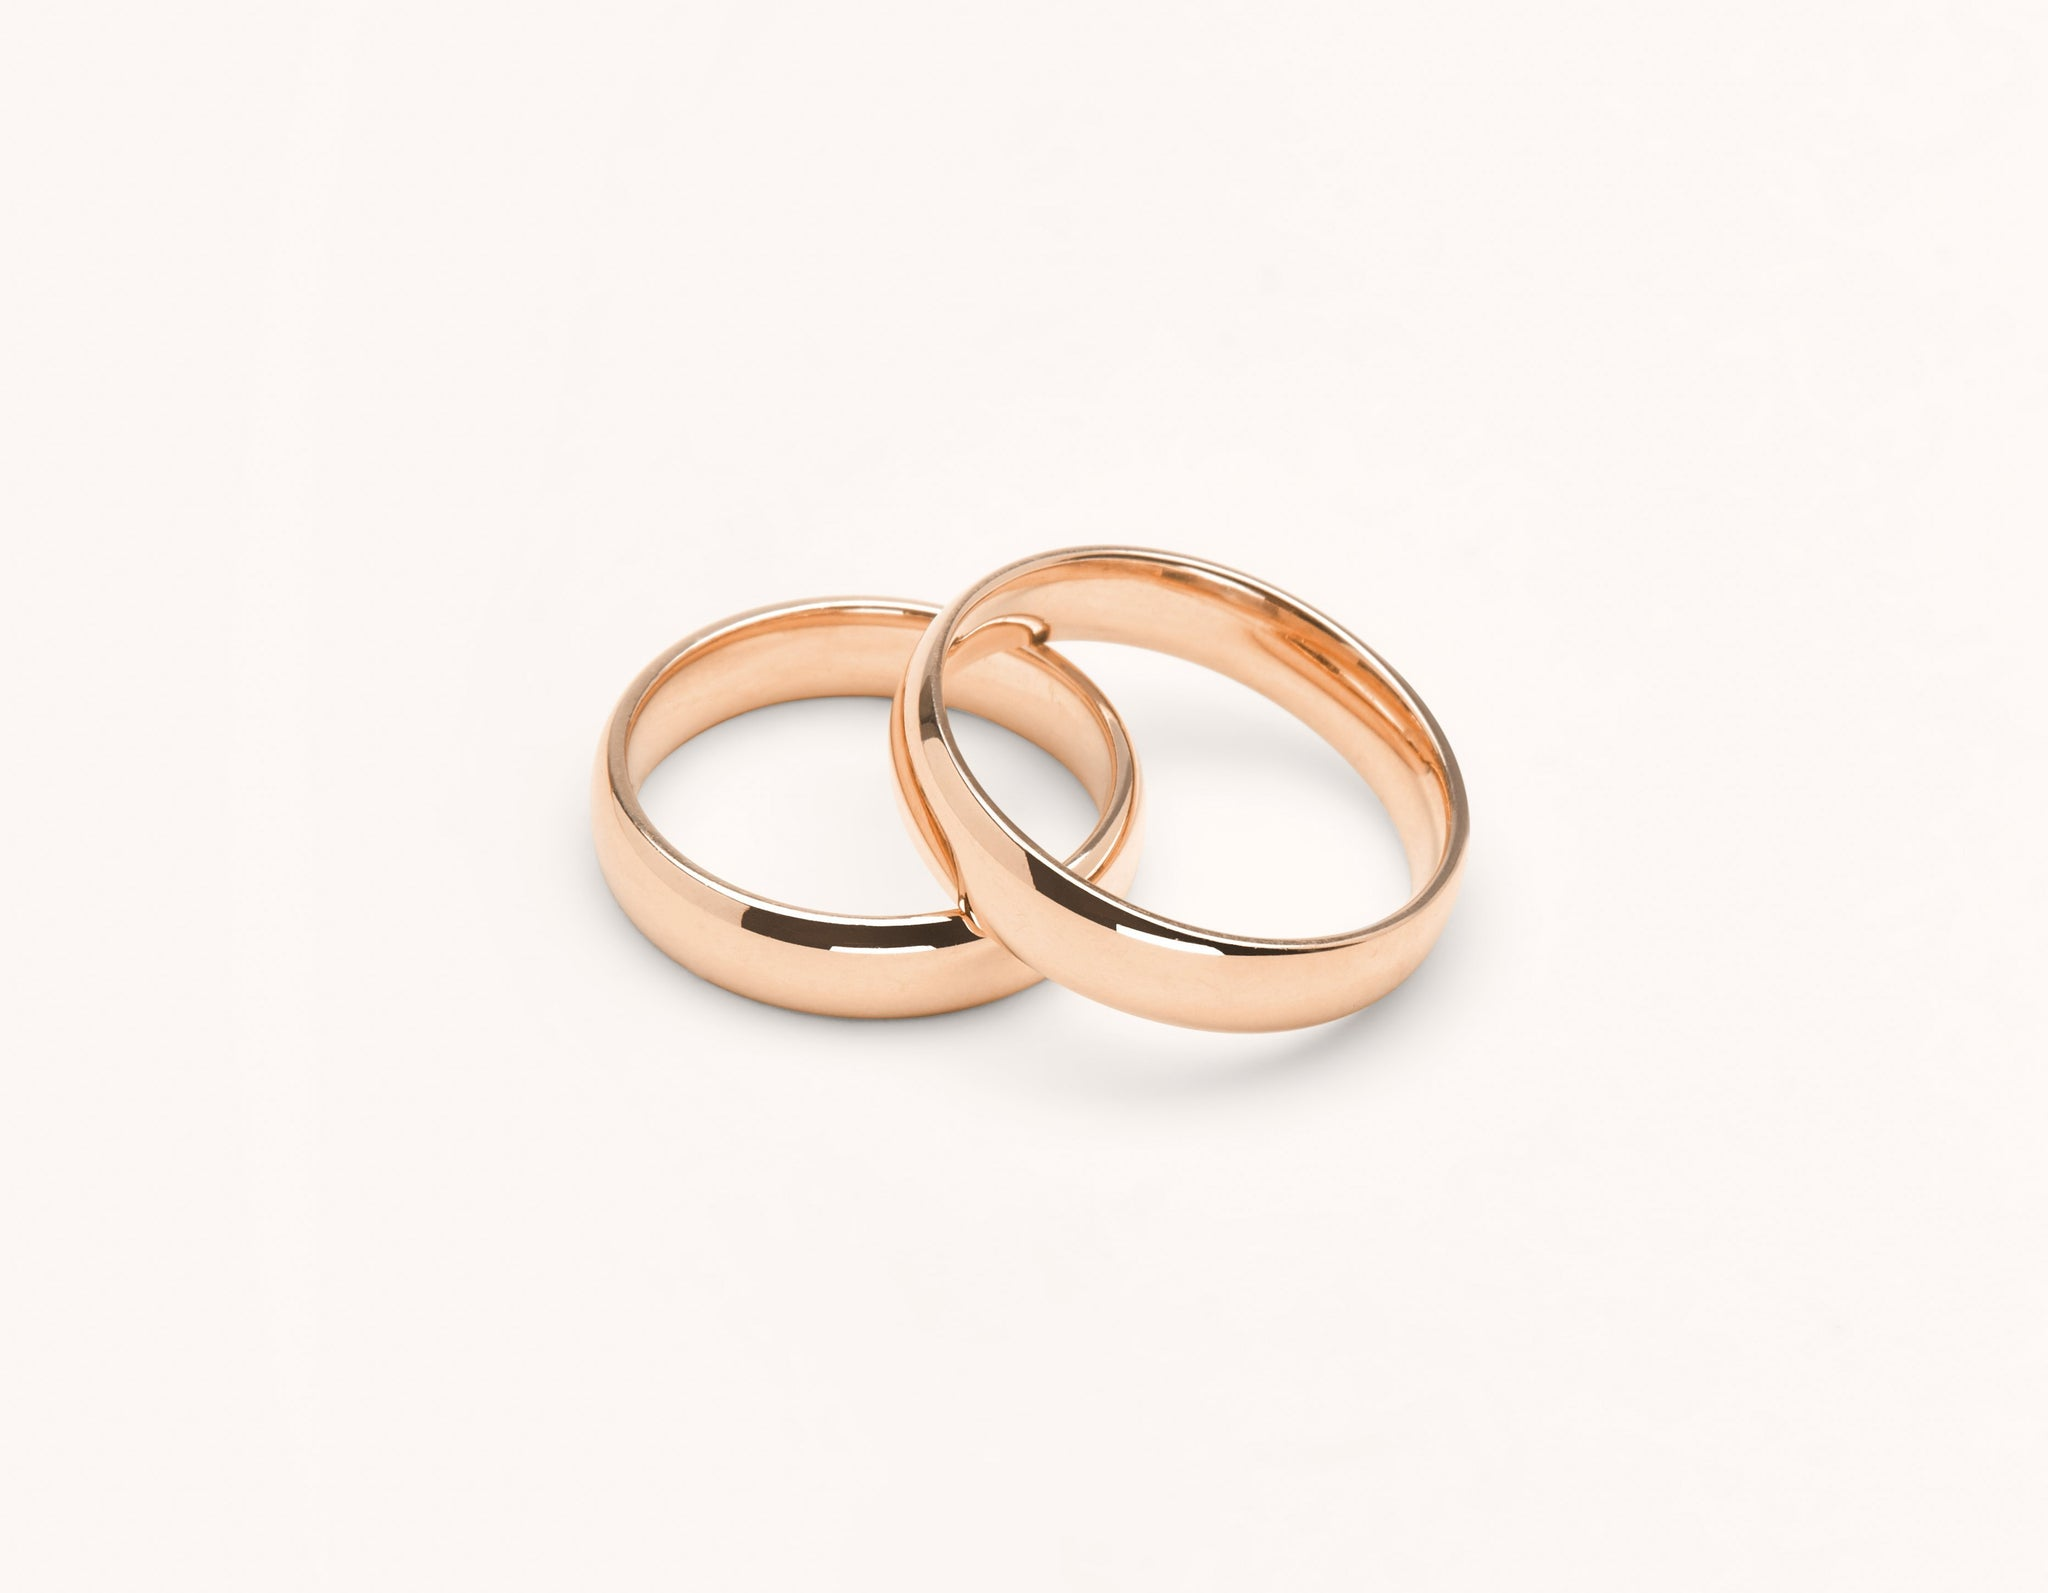 Vrai & Oro 18k solid rose gold Wedding Band 4.5 Round unisex simple classic band